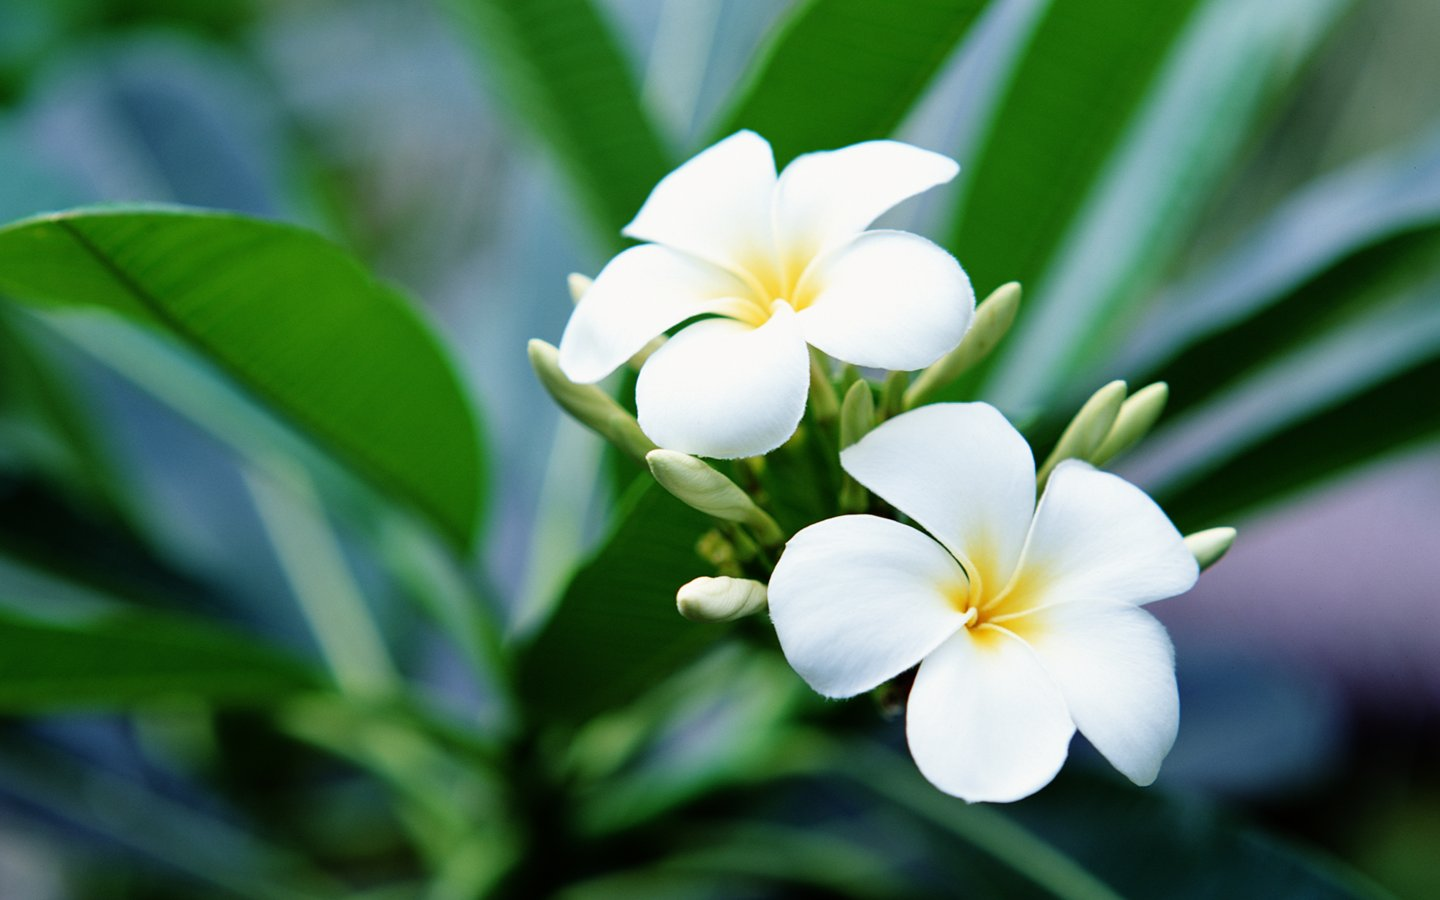 frangipani 27016 - flower wallpapers - flowers